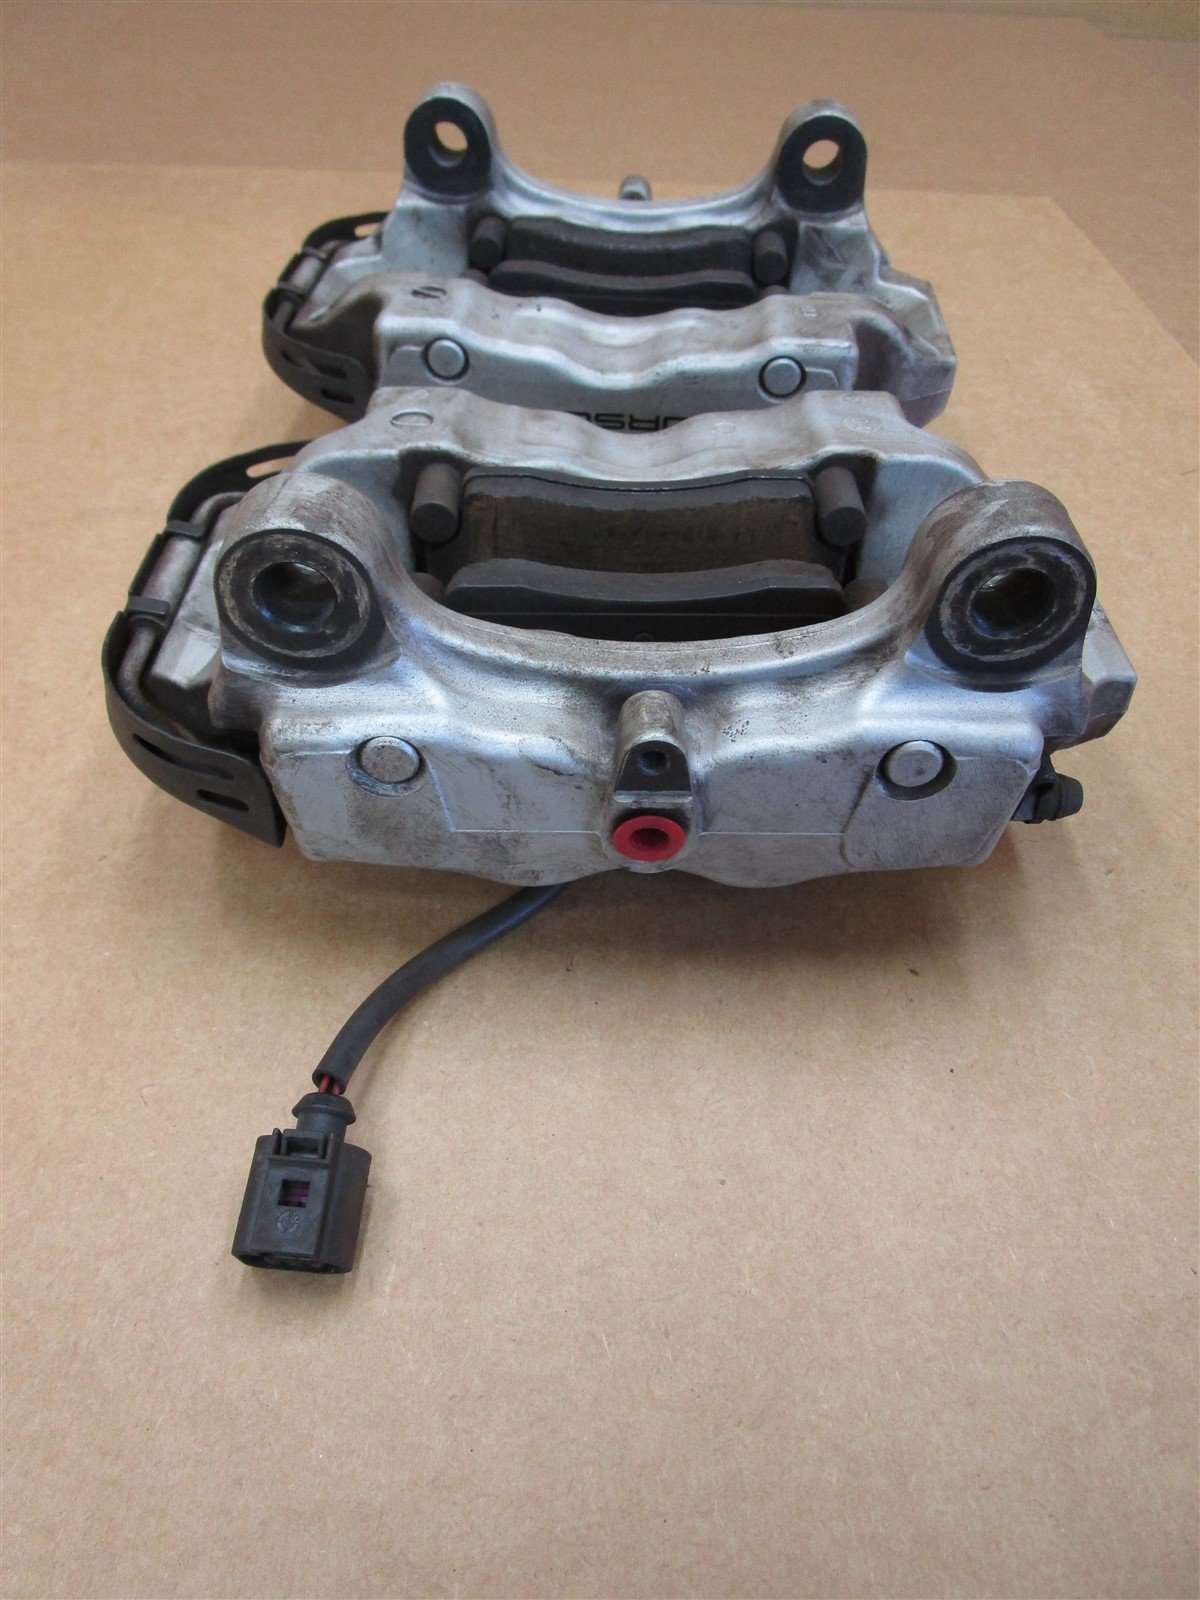 04 Cayenne S AWD Porsche 955 REAR BREMBO BRAKE CALIPERS 207673034A 44,074